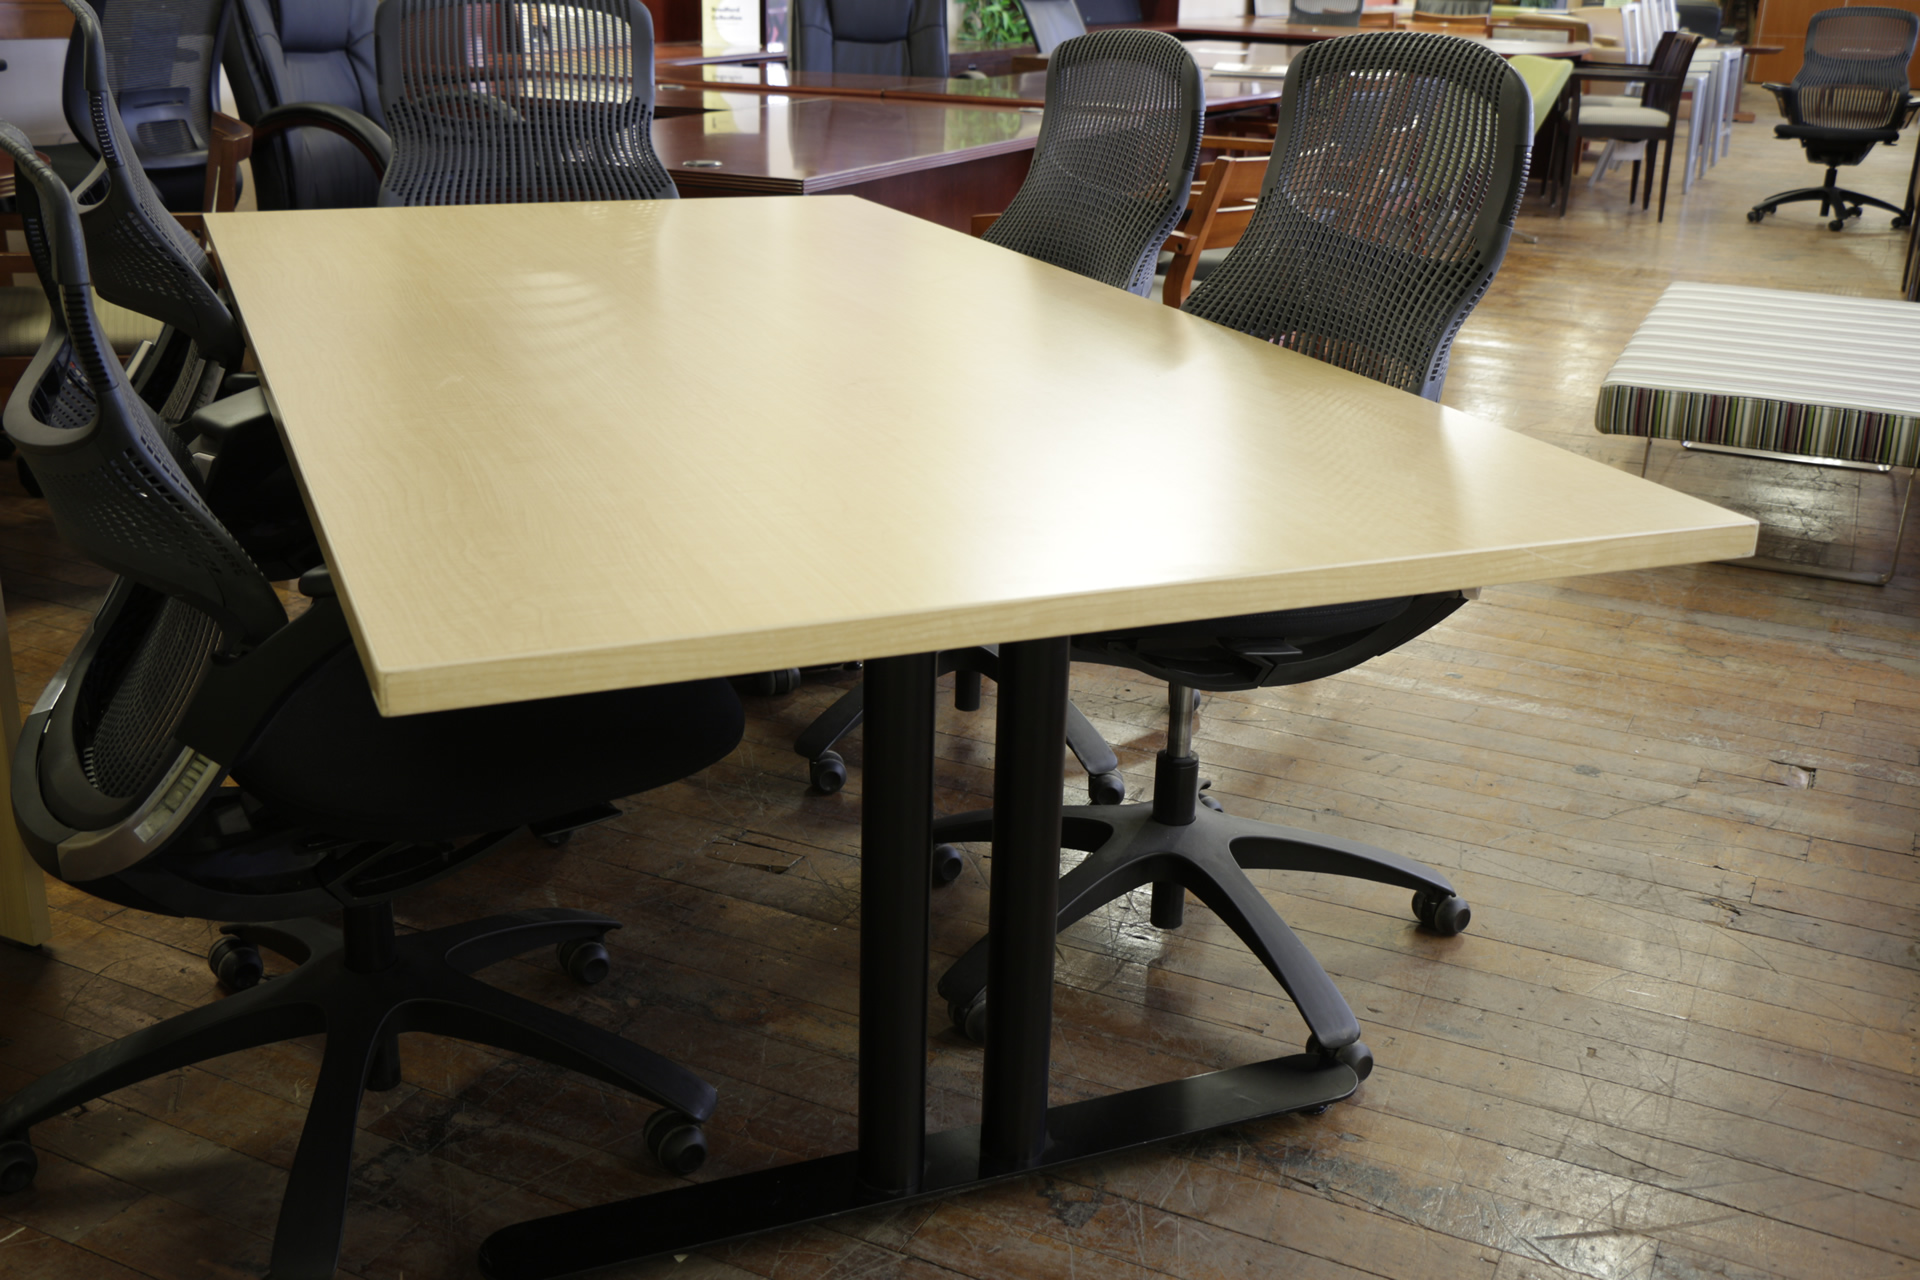 peartreeofficefurniture_peartreeofficefurniture_mg_3562.jpg